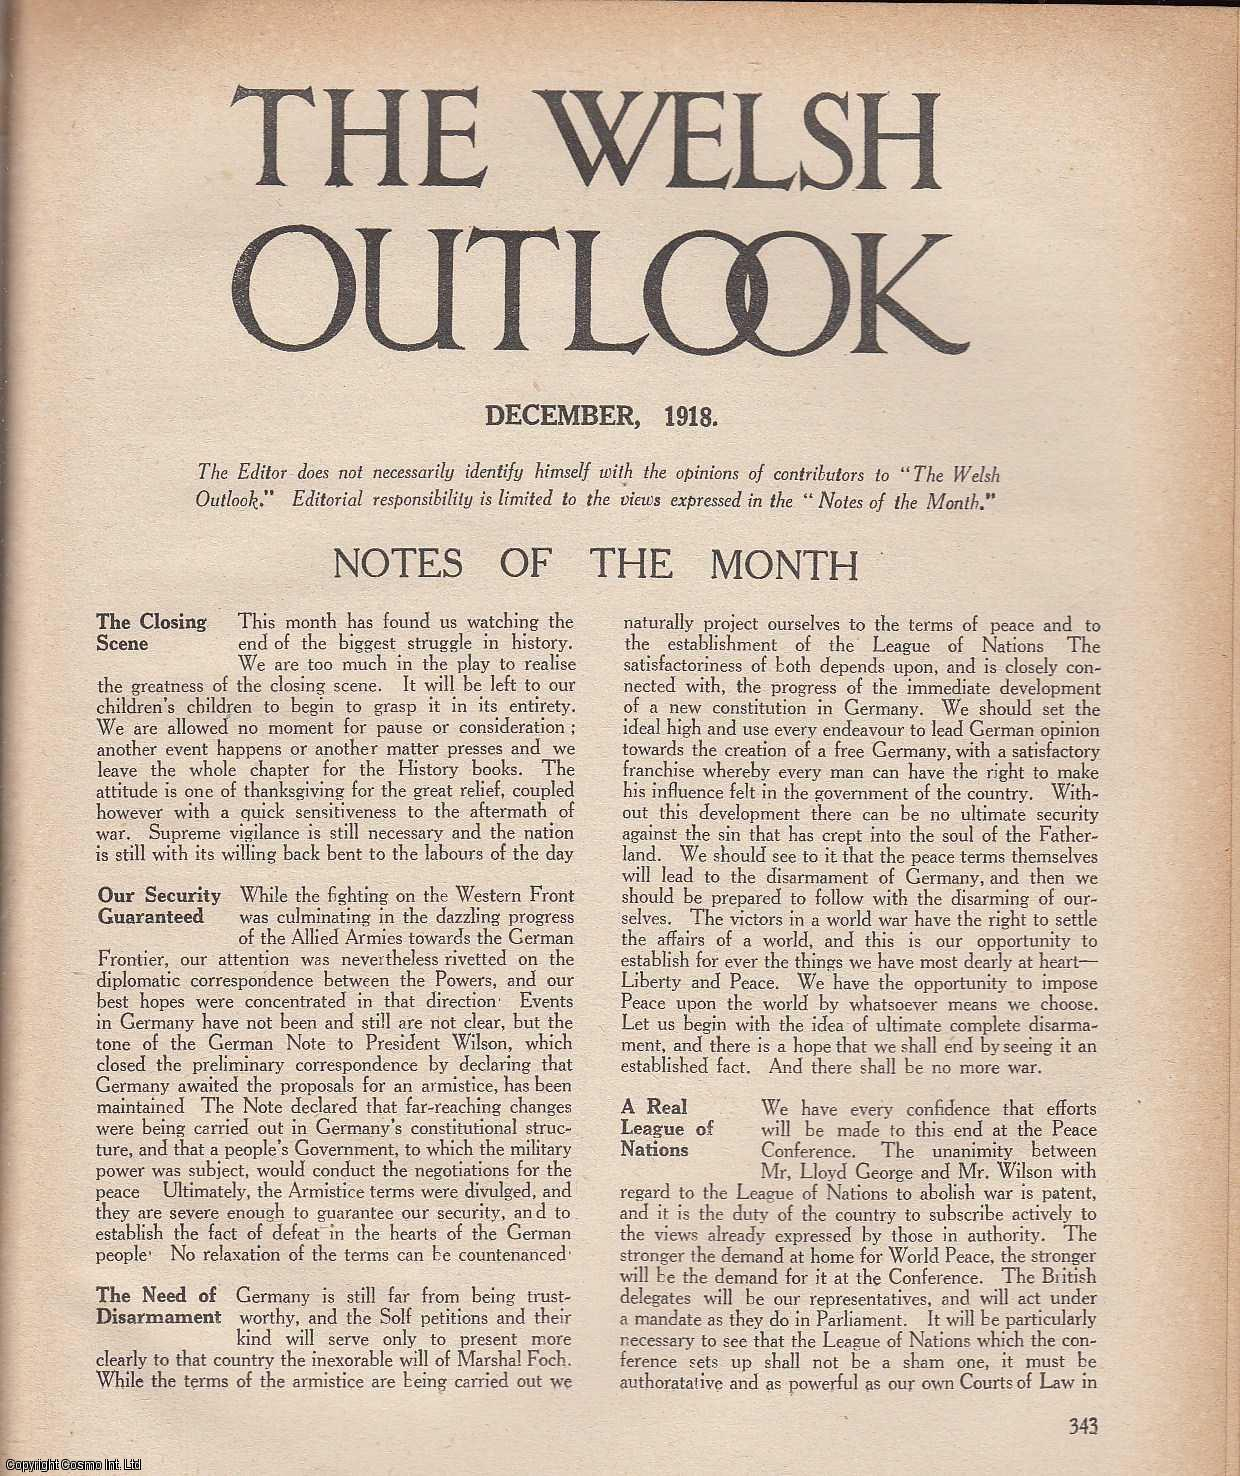 The Welsh Outlook. A Monthly Journal of National Social Progress. December, 1918. Contains; Welsh Politics - A Survey by a Welsh Nationalist; Democracy or Dictator? by Frederick J. Mathais; The Development of Rural Industries by O.T. Jones; Martha Lewis by H.M.V., Thomas Jones (Editor)